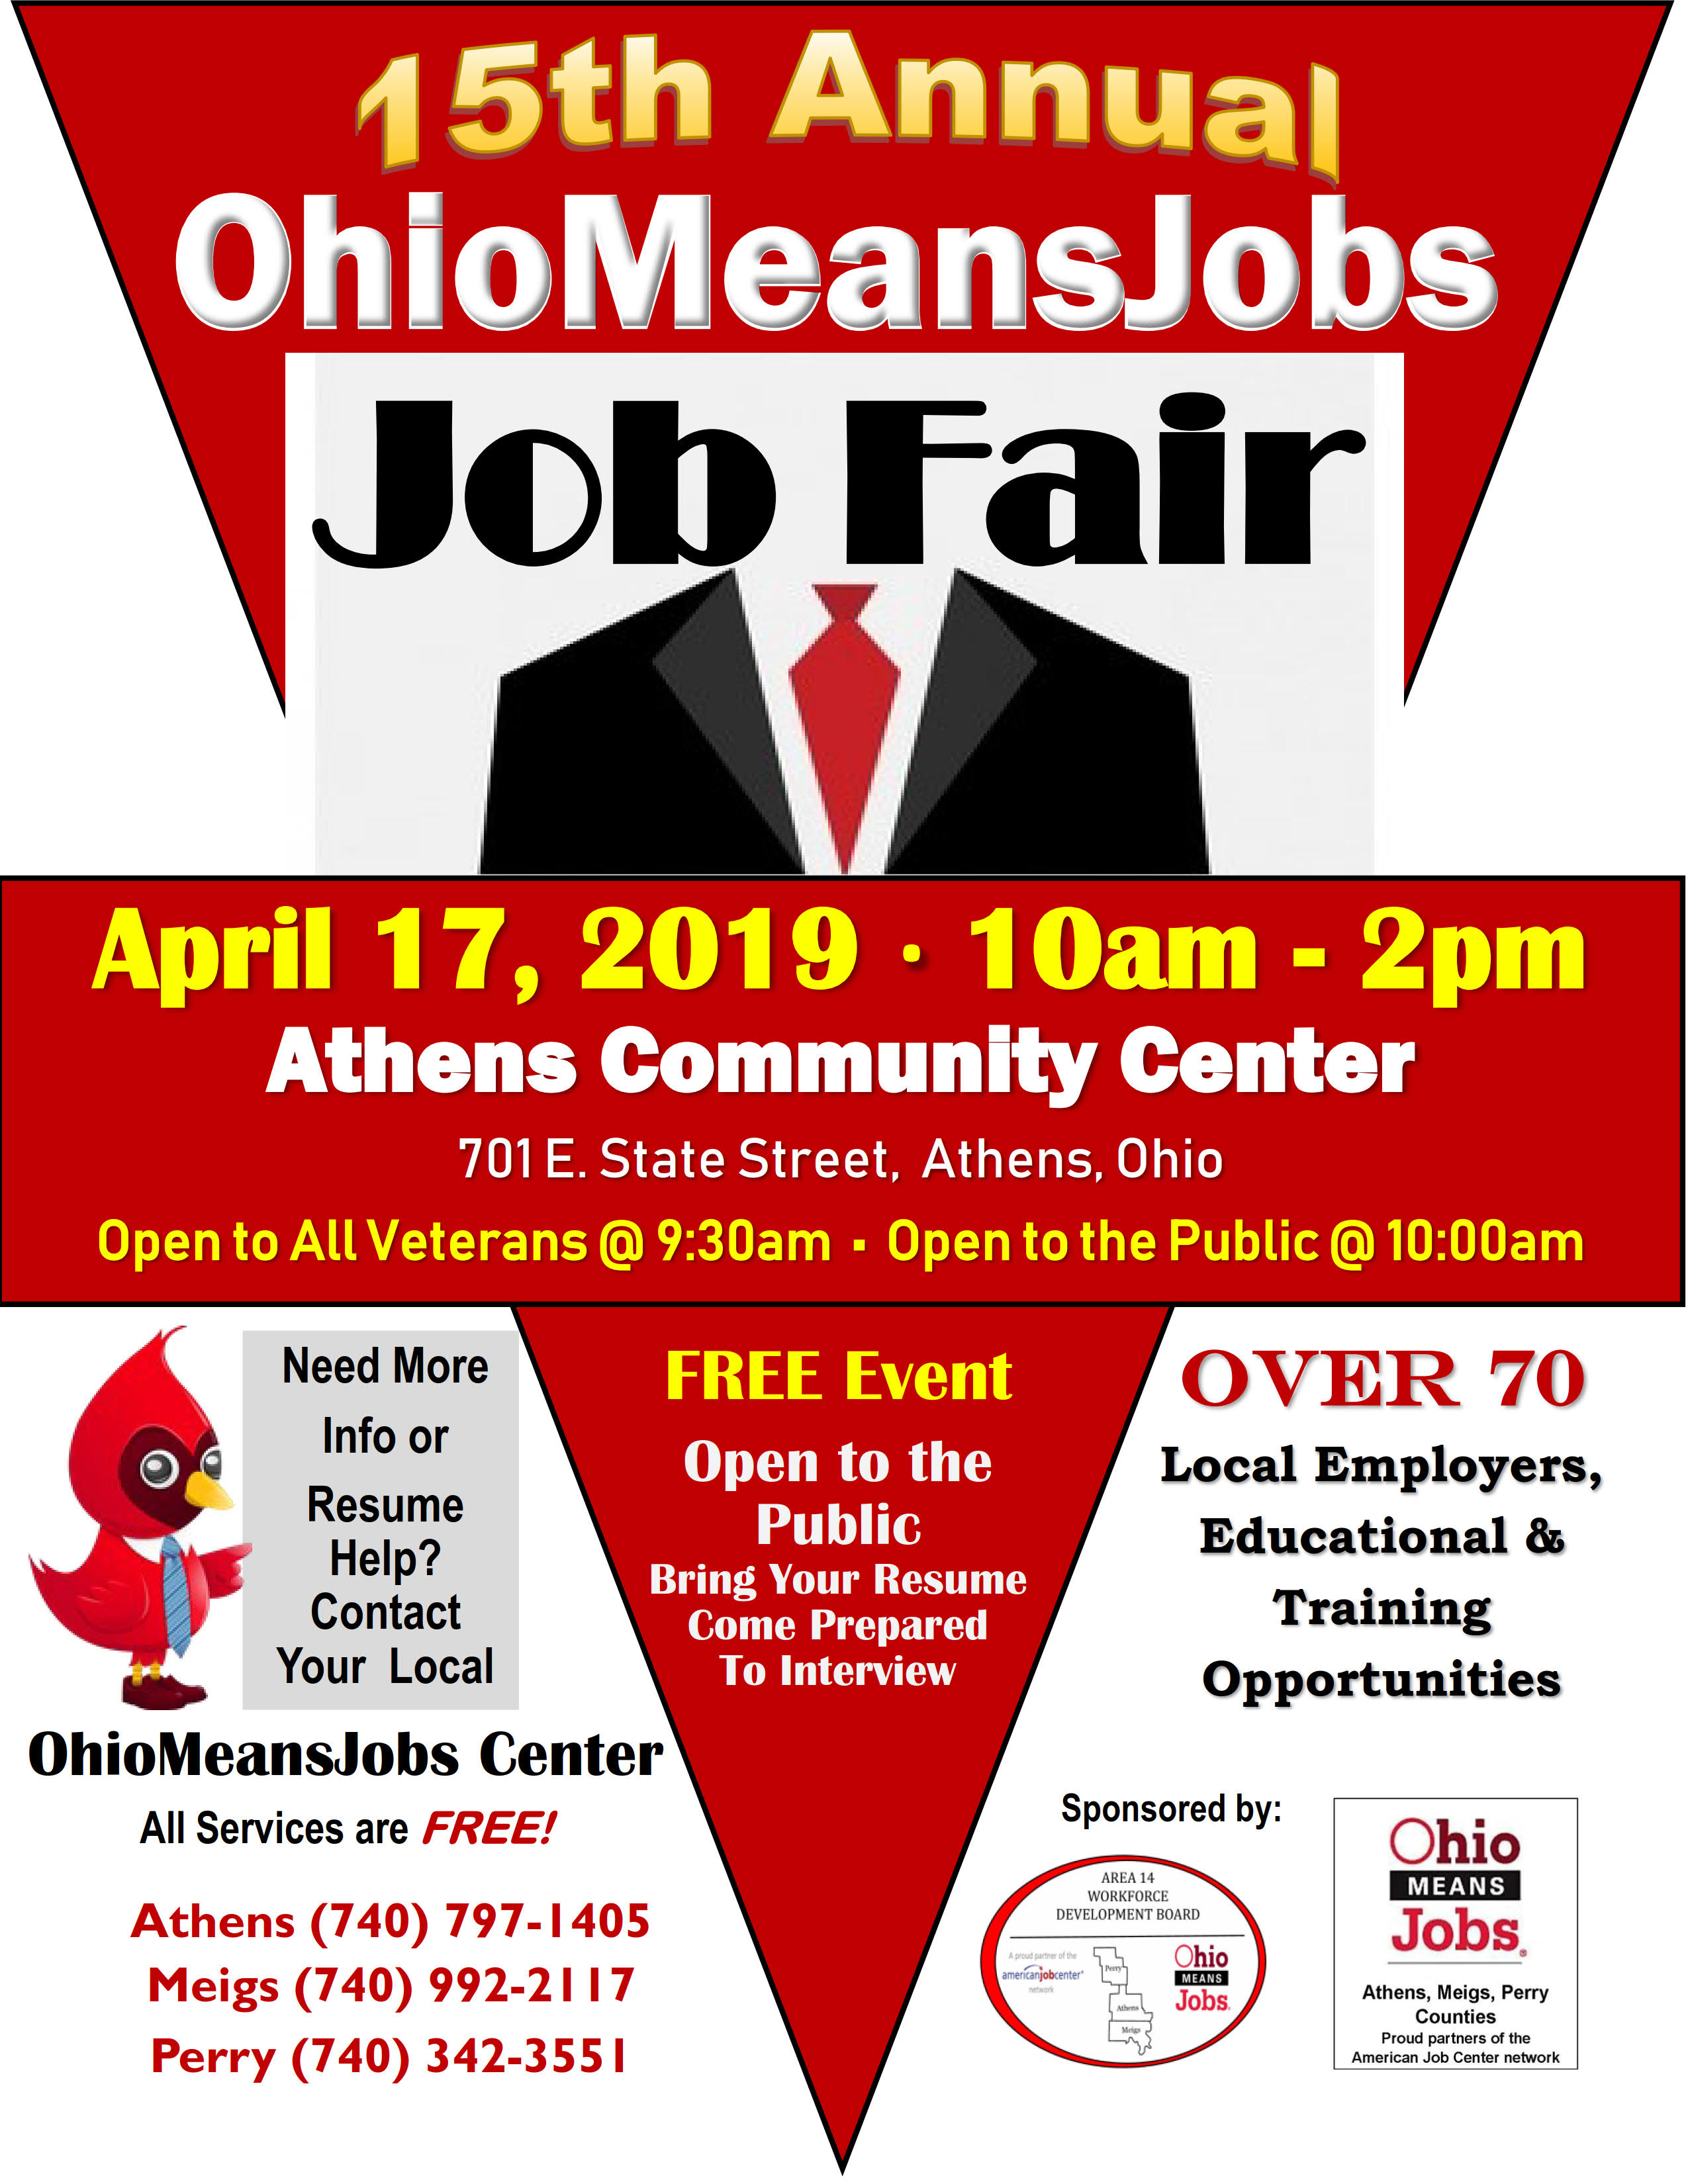 15th Annual Ohiomeansjobs Job Fair Perry County Ohio